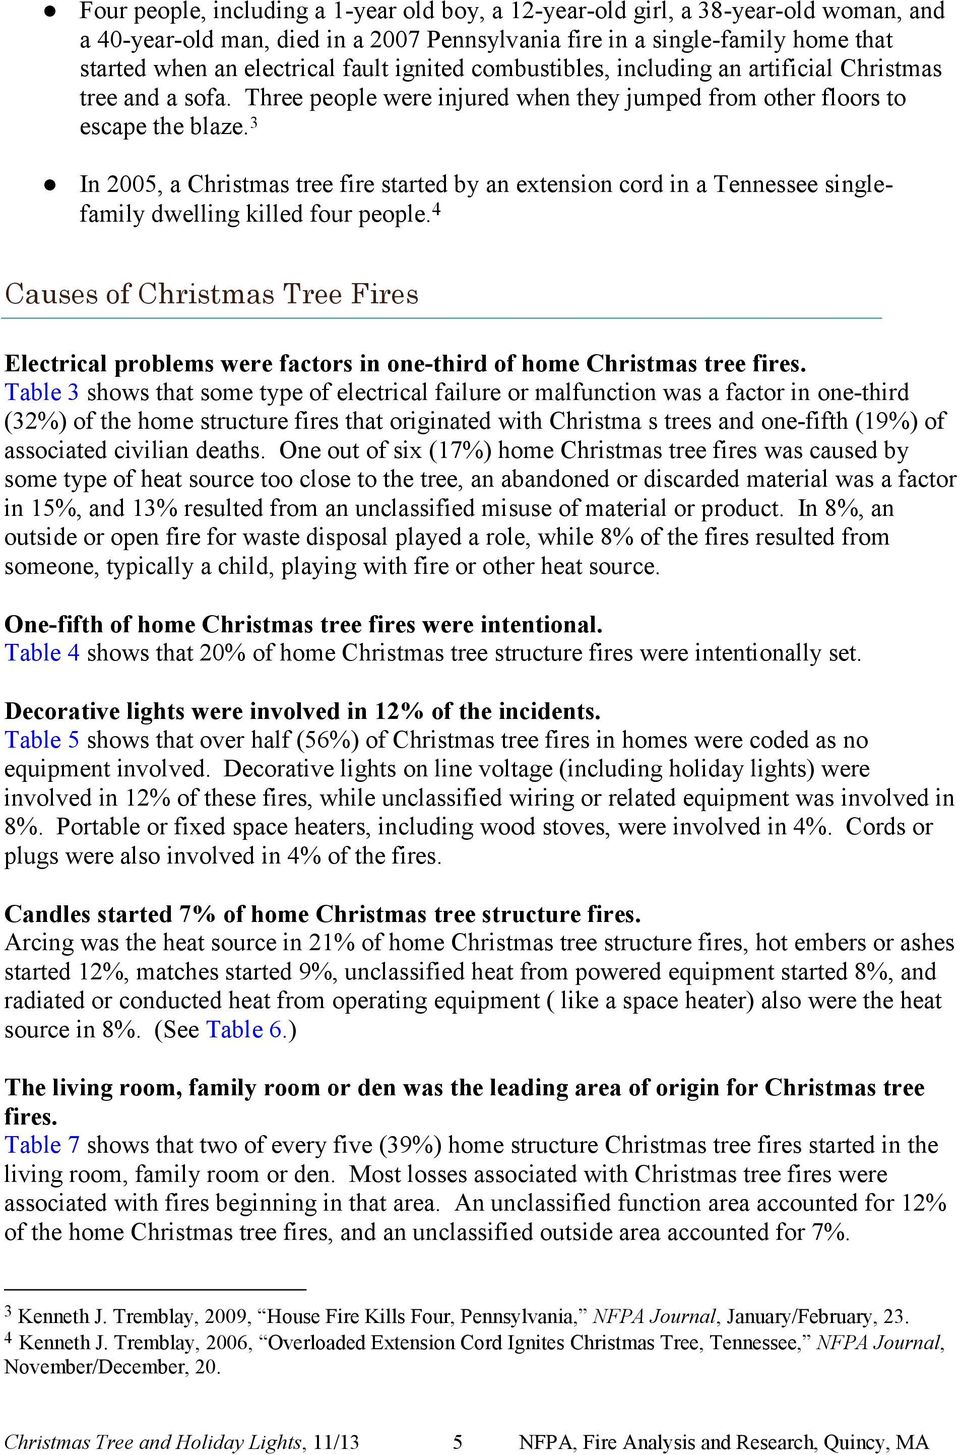 3 In 2005, a Christmas tree fire started by an extension cord in a Tennessee singlefamily dwelling killed four people.